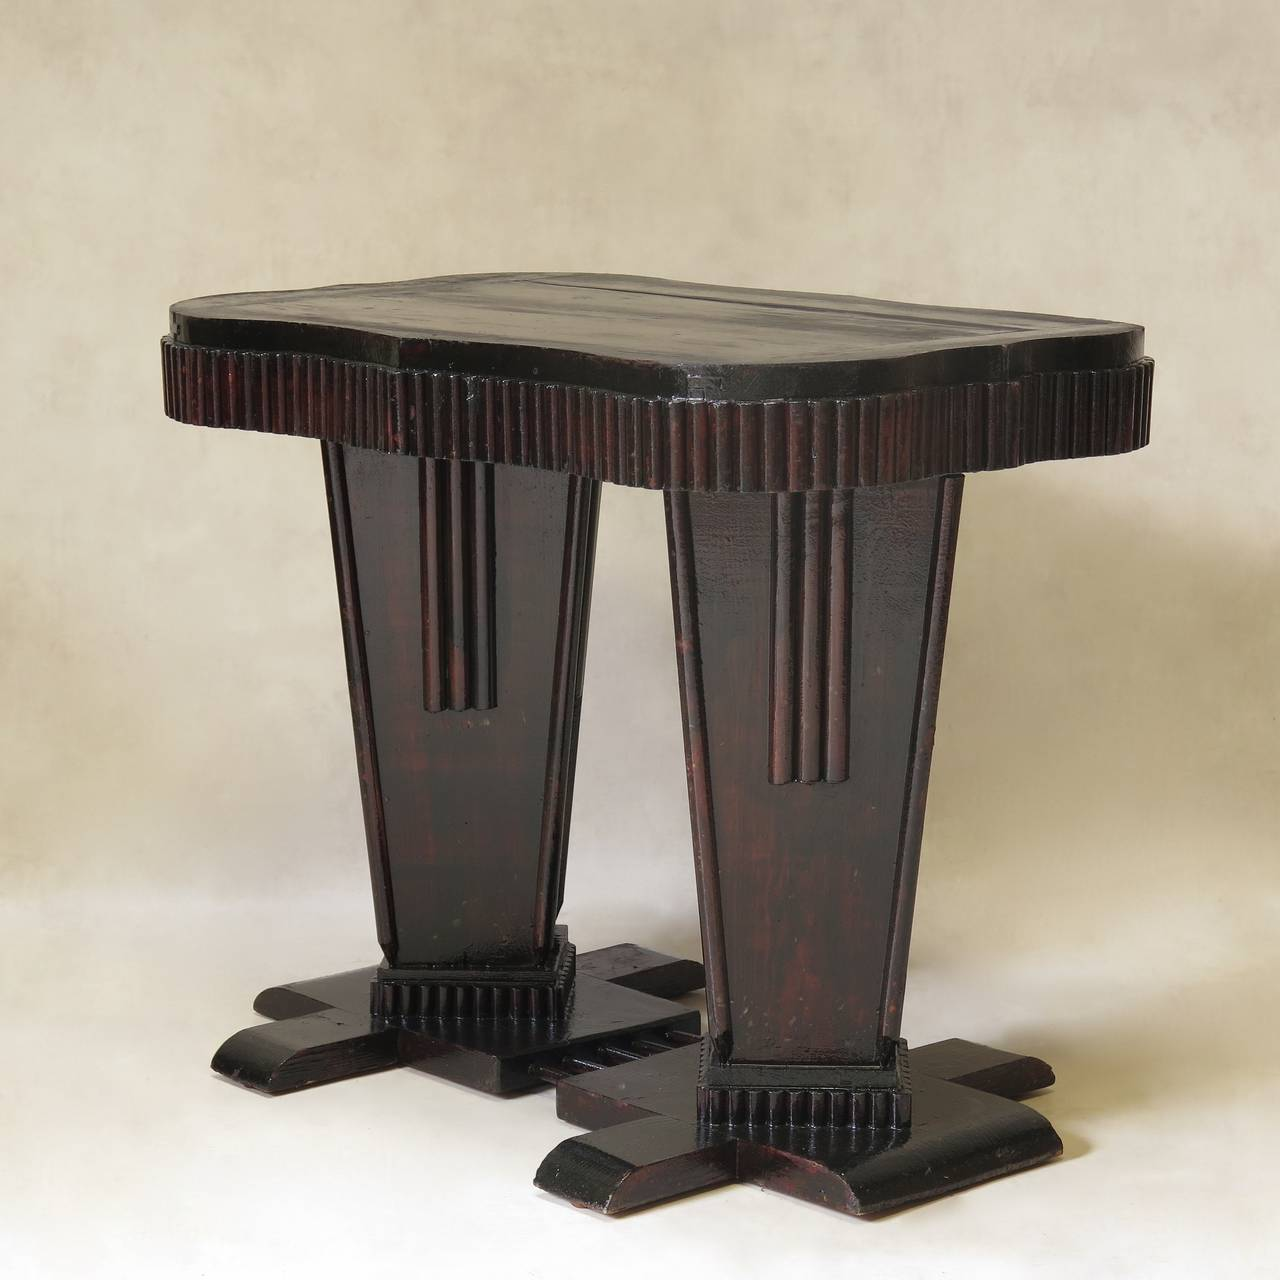 Unusual Art Deco Table and Chair Set, France, 1930s 9